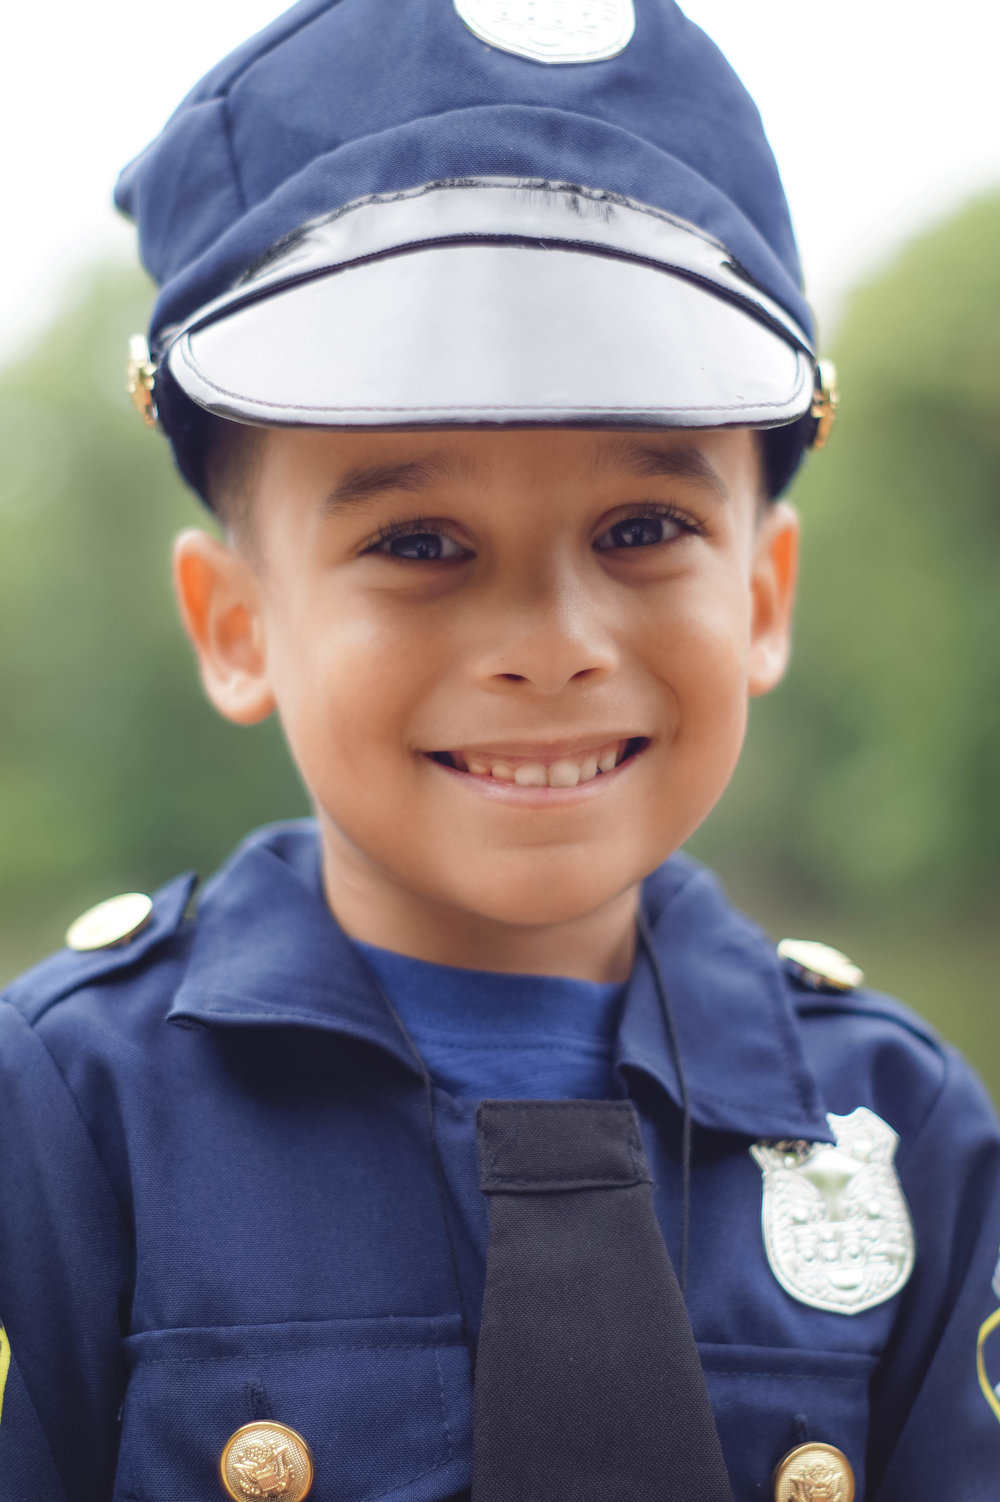 Officer Siah 4th Bday-5.jpg